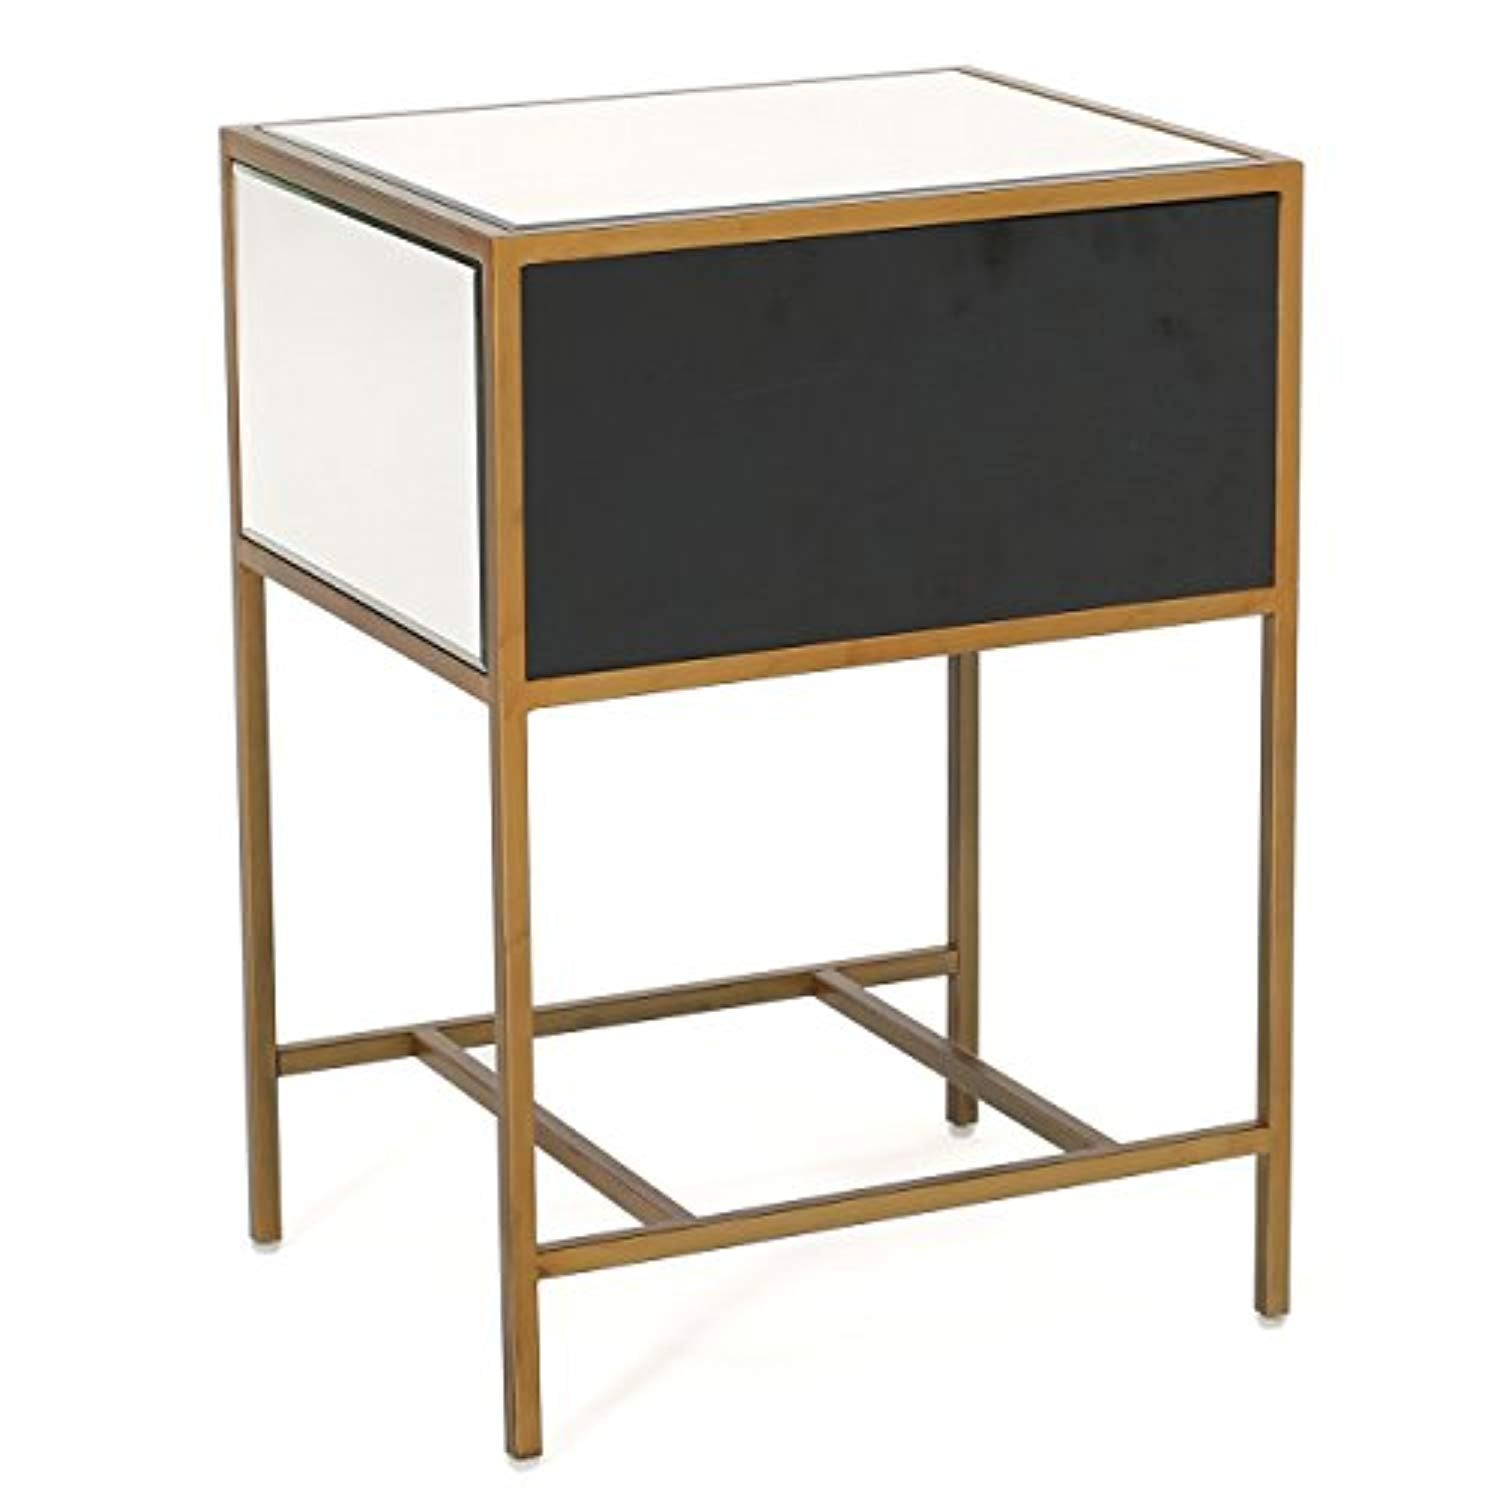 Chic Mirrored Gold Single Drawer Side Table